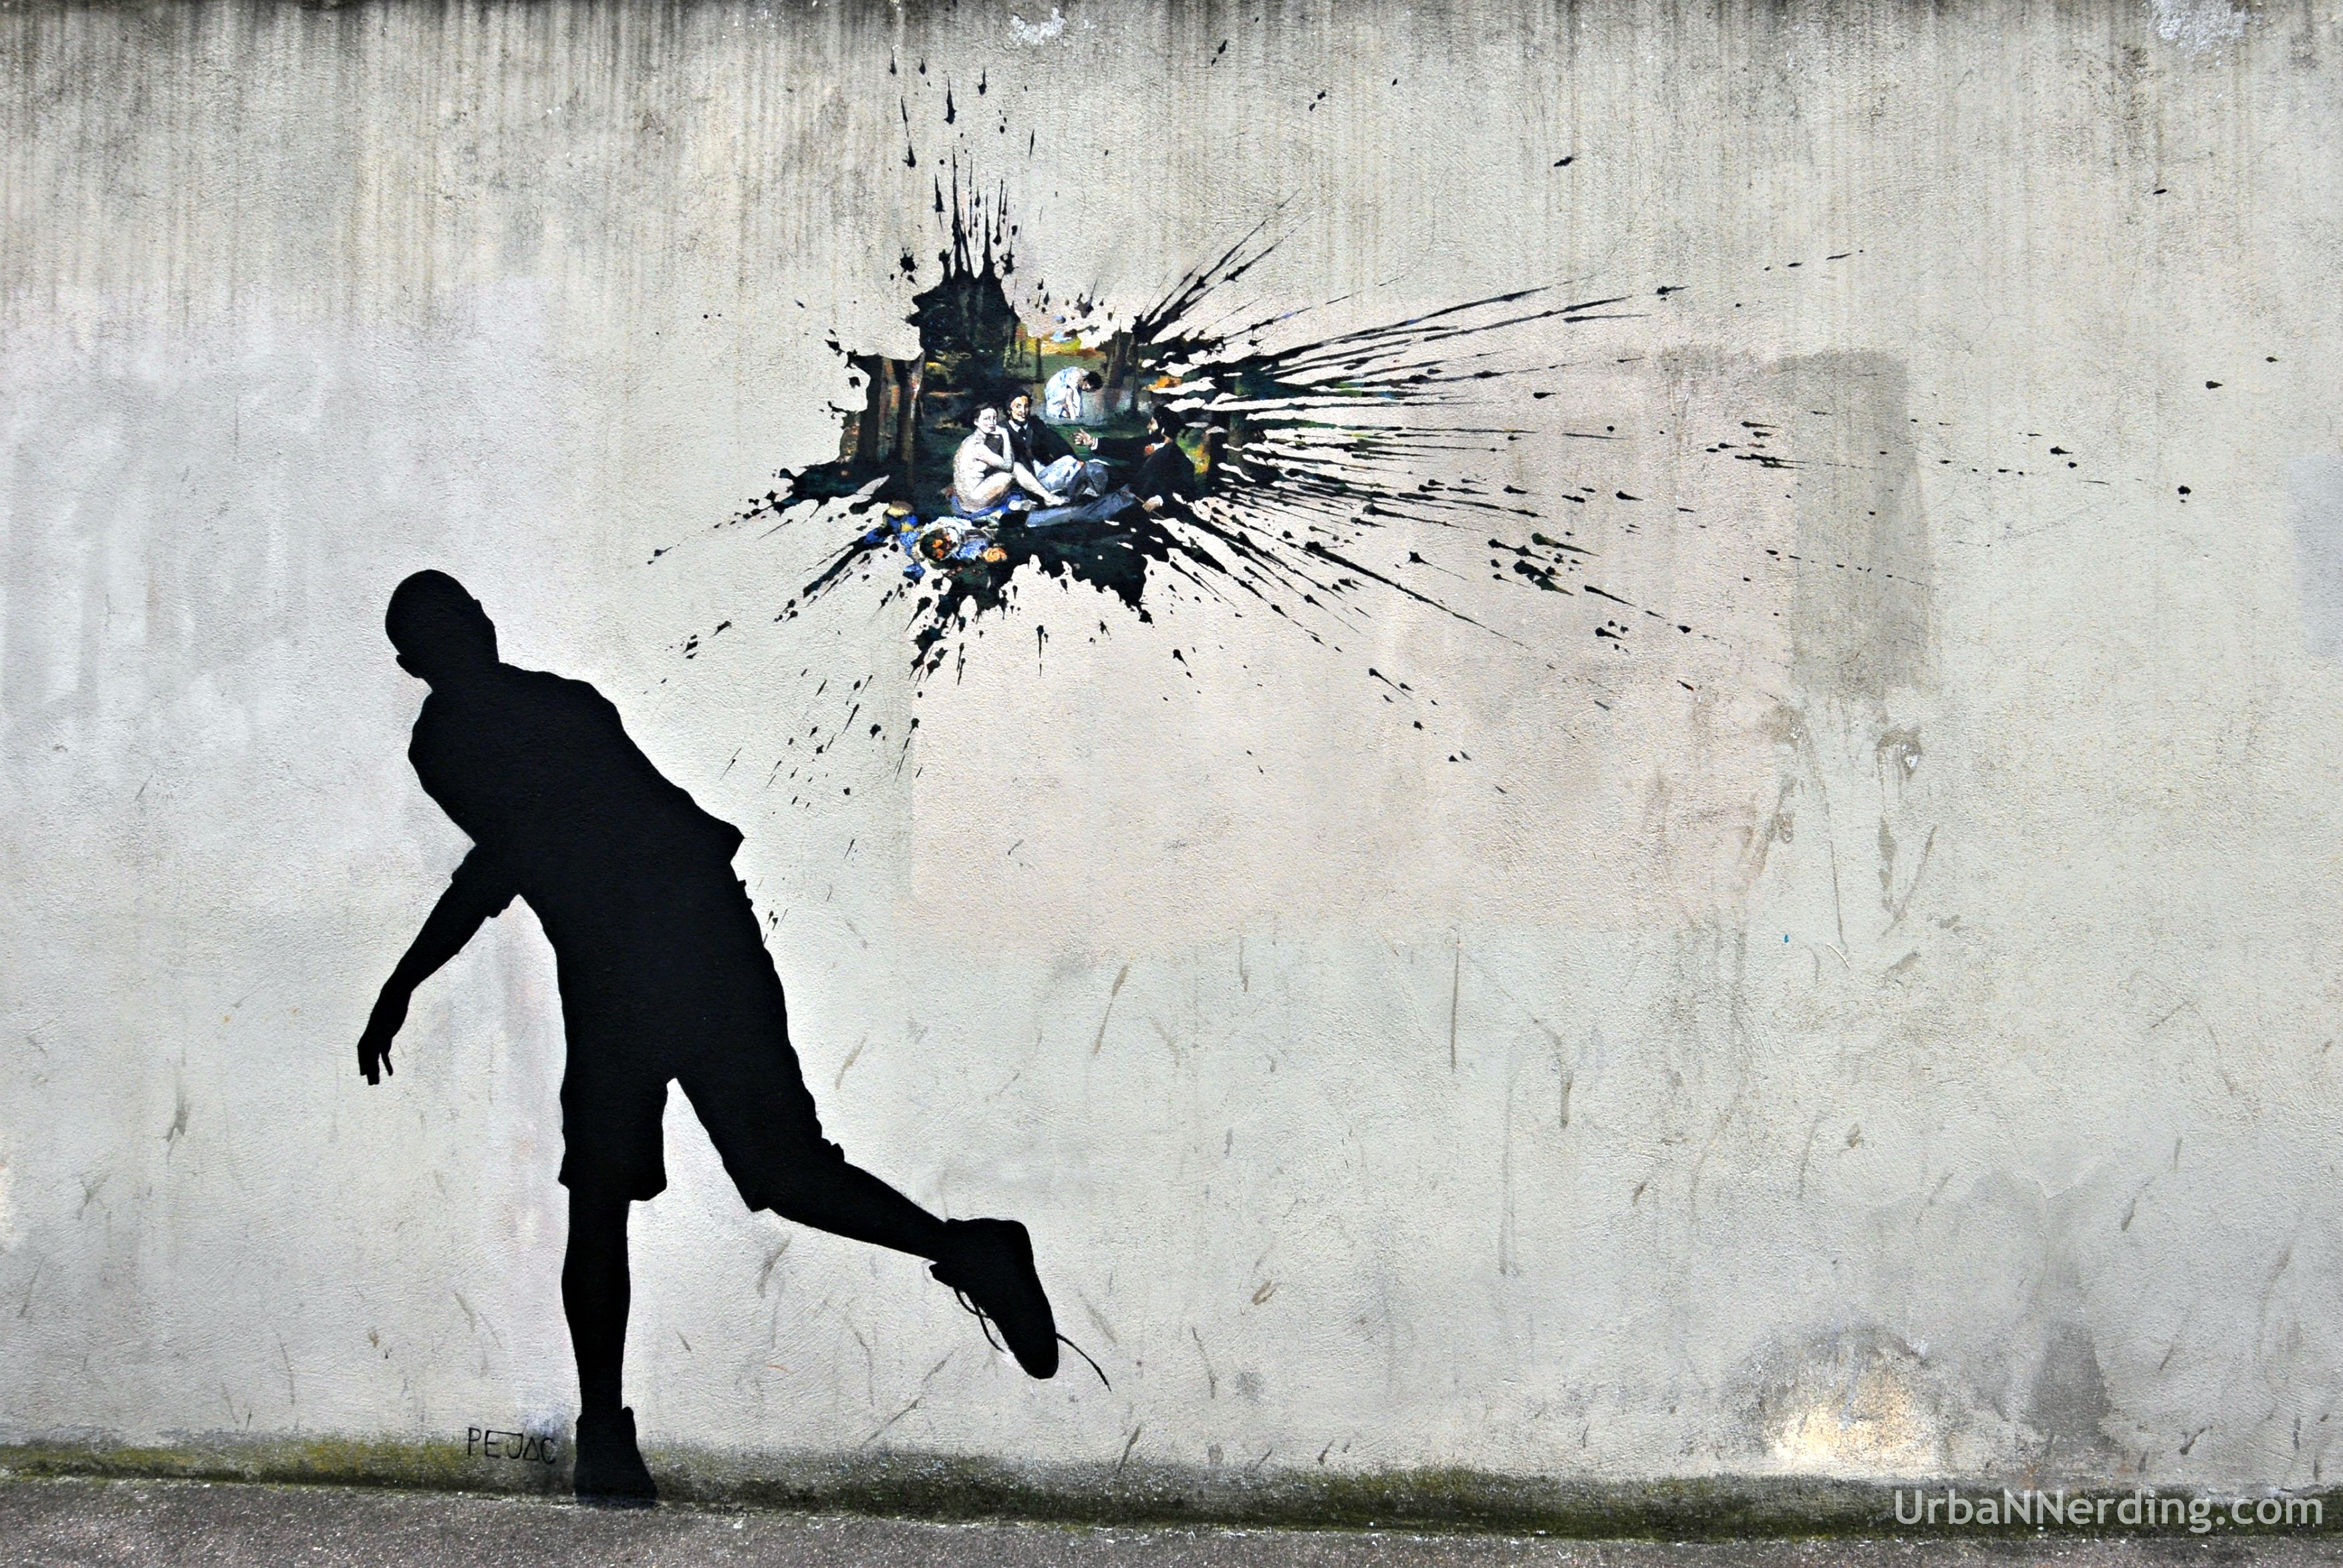 Theres A Surprise In This Paint Splat By Street Artist Pejac